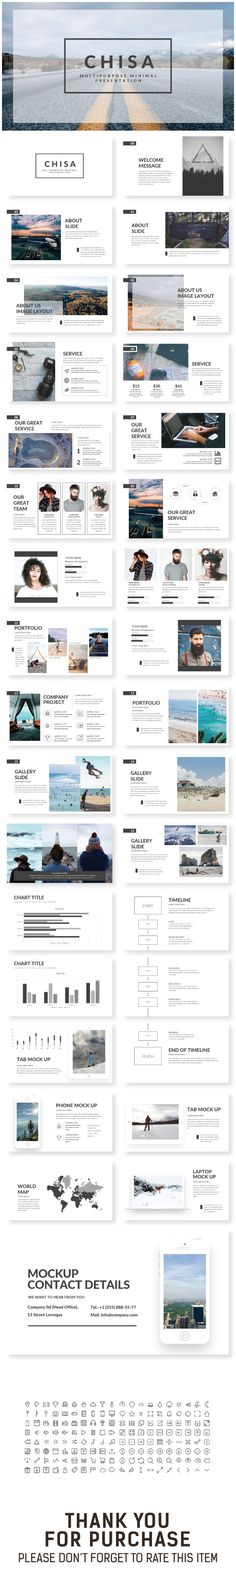 Keynote Template - Note : All Image Is Not Include Drag & Drop Image Image Placeholder Easy to change colors, F. Cool Powerpoint, Powerpoint Design Templates, Keynote Template, Slide Presentation, Presentation Design, Presentation Templates, Graphisches Design, Layout Design, Clean Design